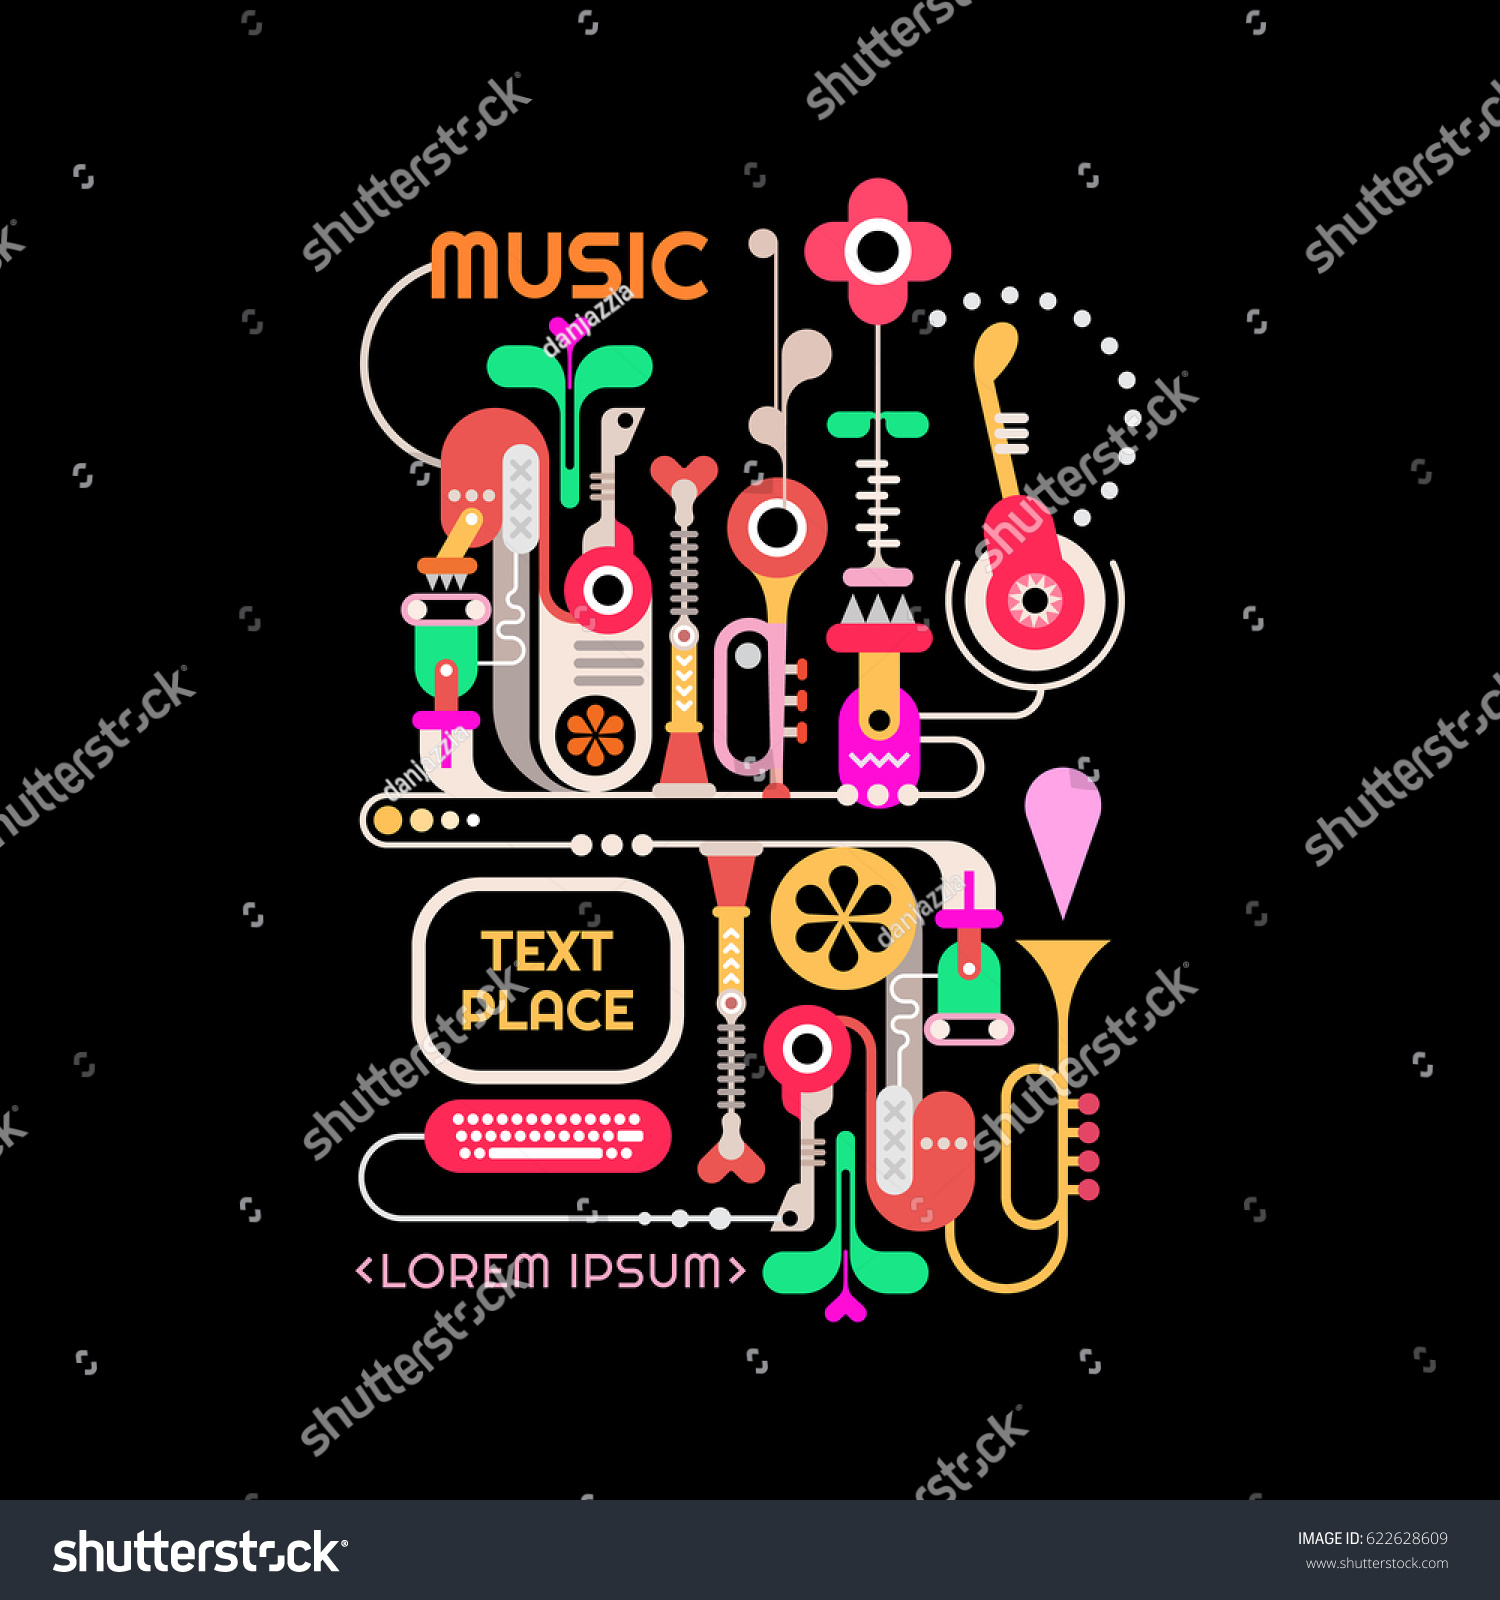 Abstract Music Design Vector Illustration Isolated Stock